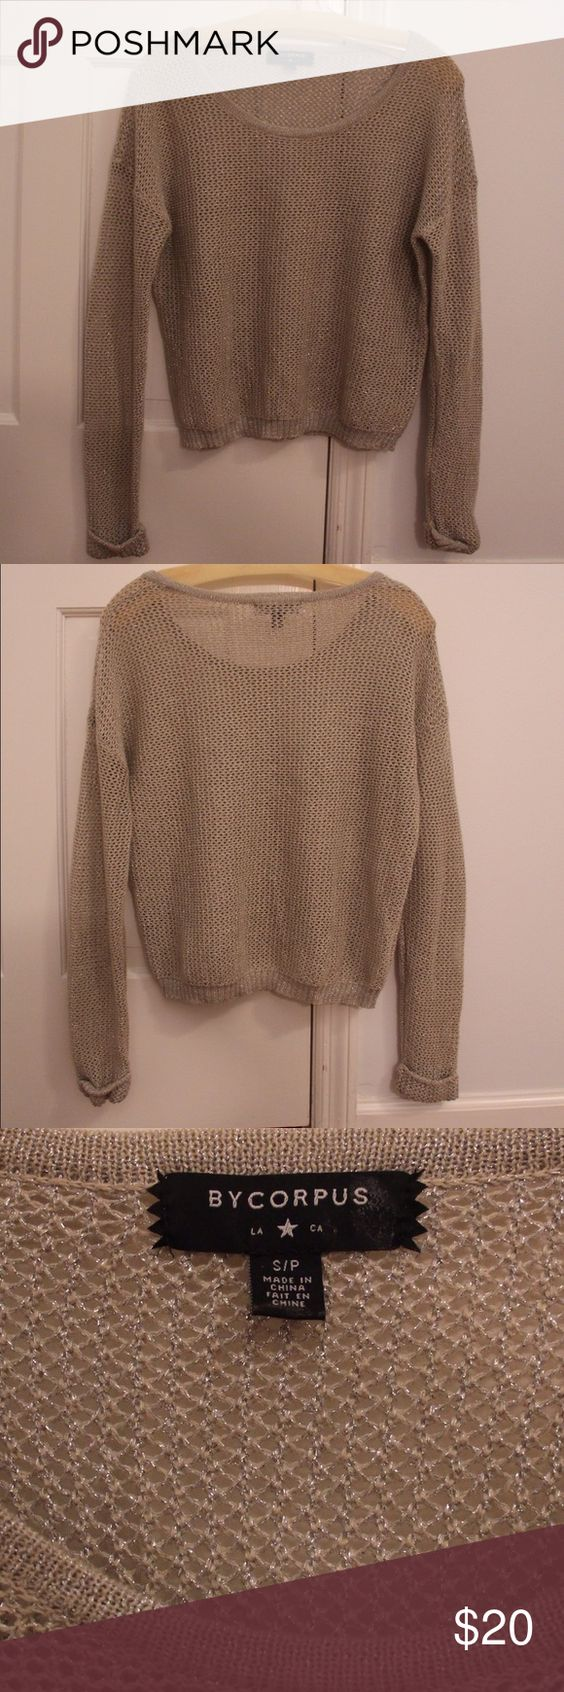 Urban Outfitters ByCorpus Open Knit Beige Sweater Urban Outfitters ByCorpus Open Knit Beige Sweater Size Small. Boxy fit, cuffed sleeves. Worn once! Urban Outfitters Sweaters